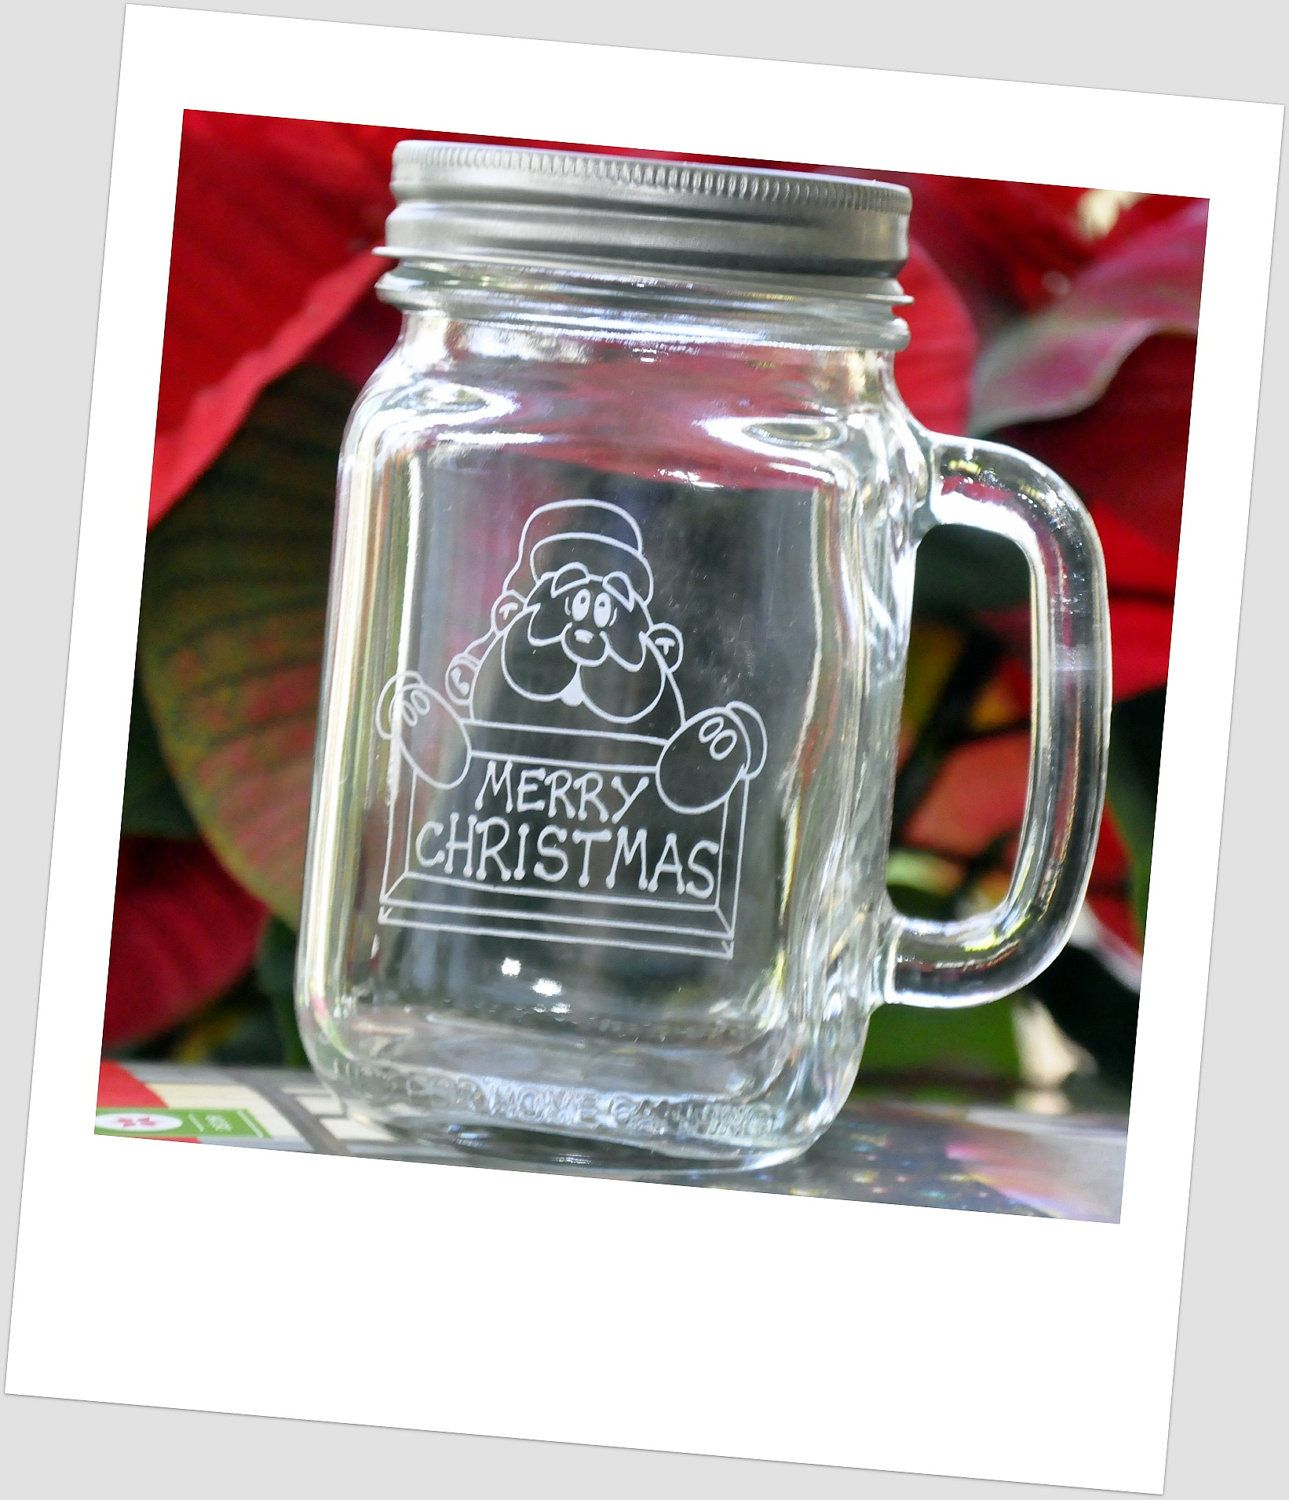 Jars On Sale 24 Hour Sale On Santa Etched Mason Jar With Handle Merry